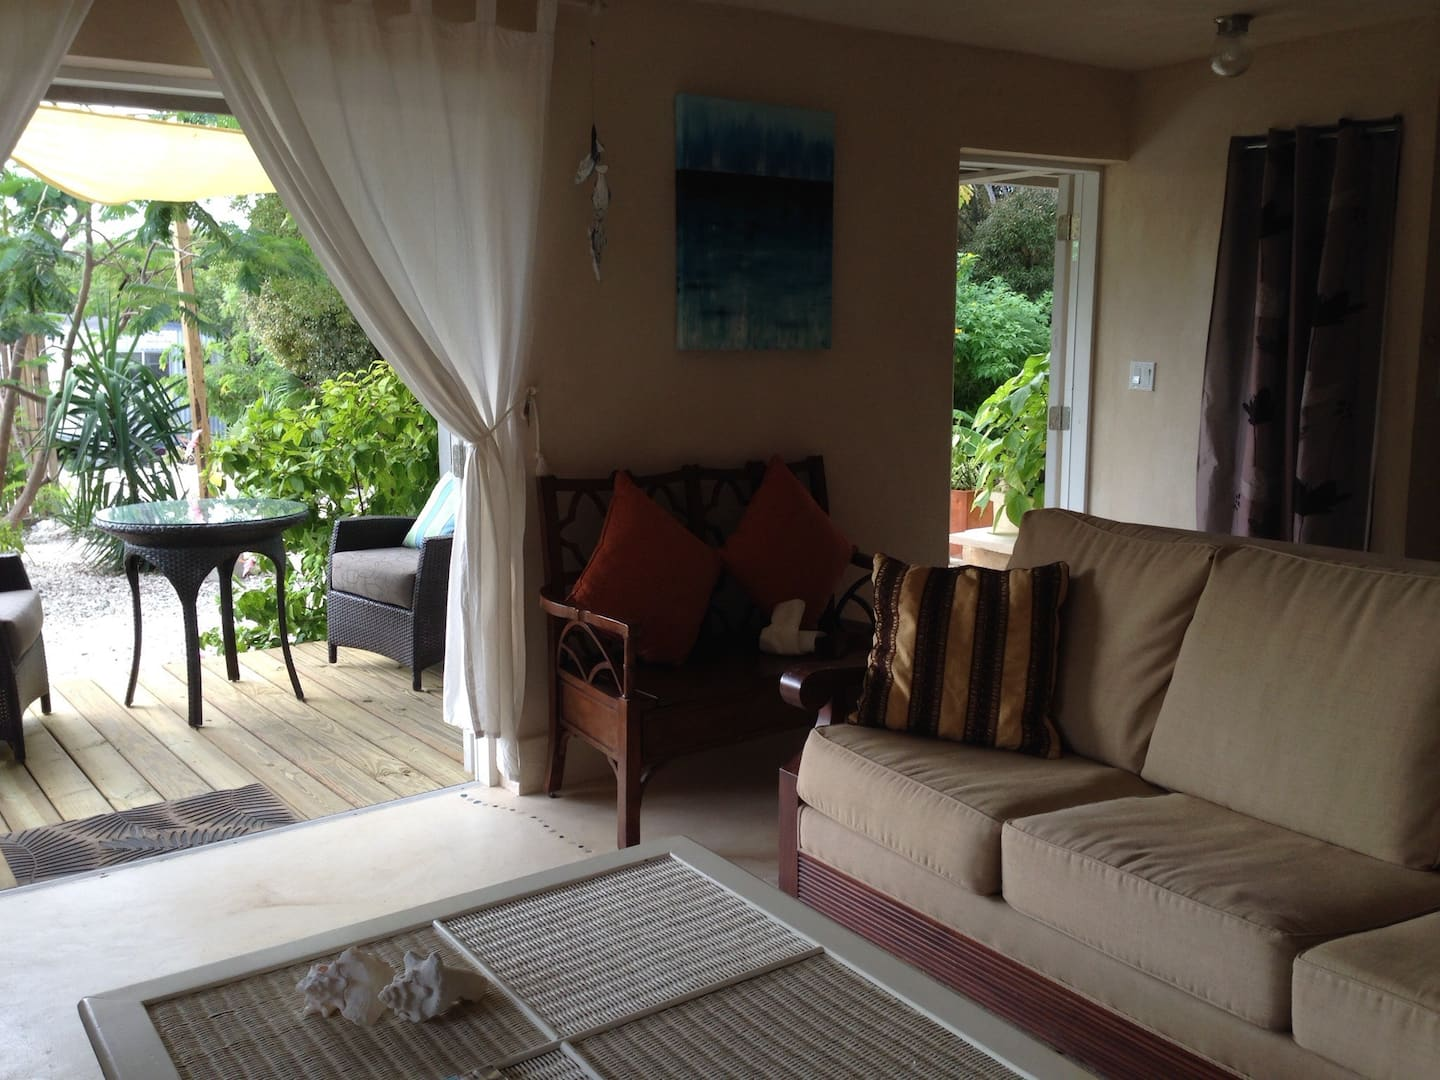 The Old Beach House - Turks and Caicos Airbnb